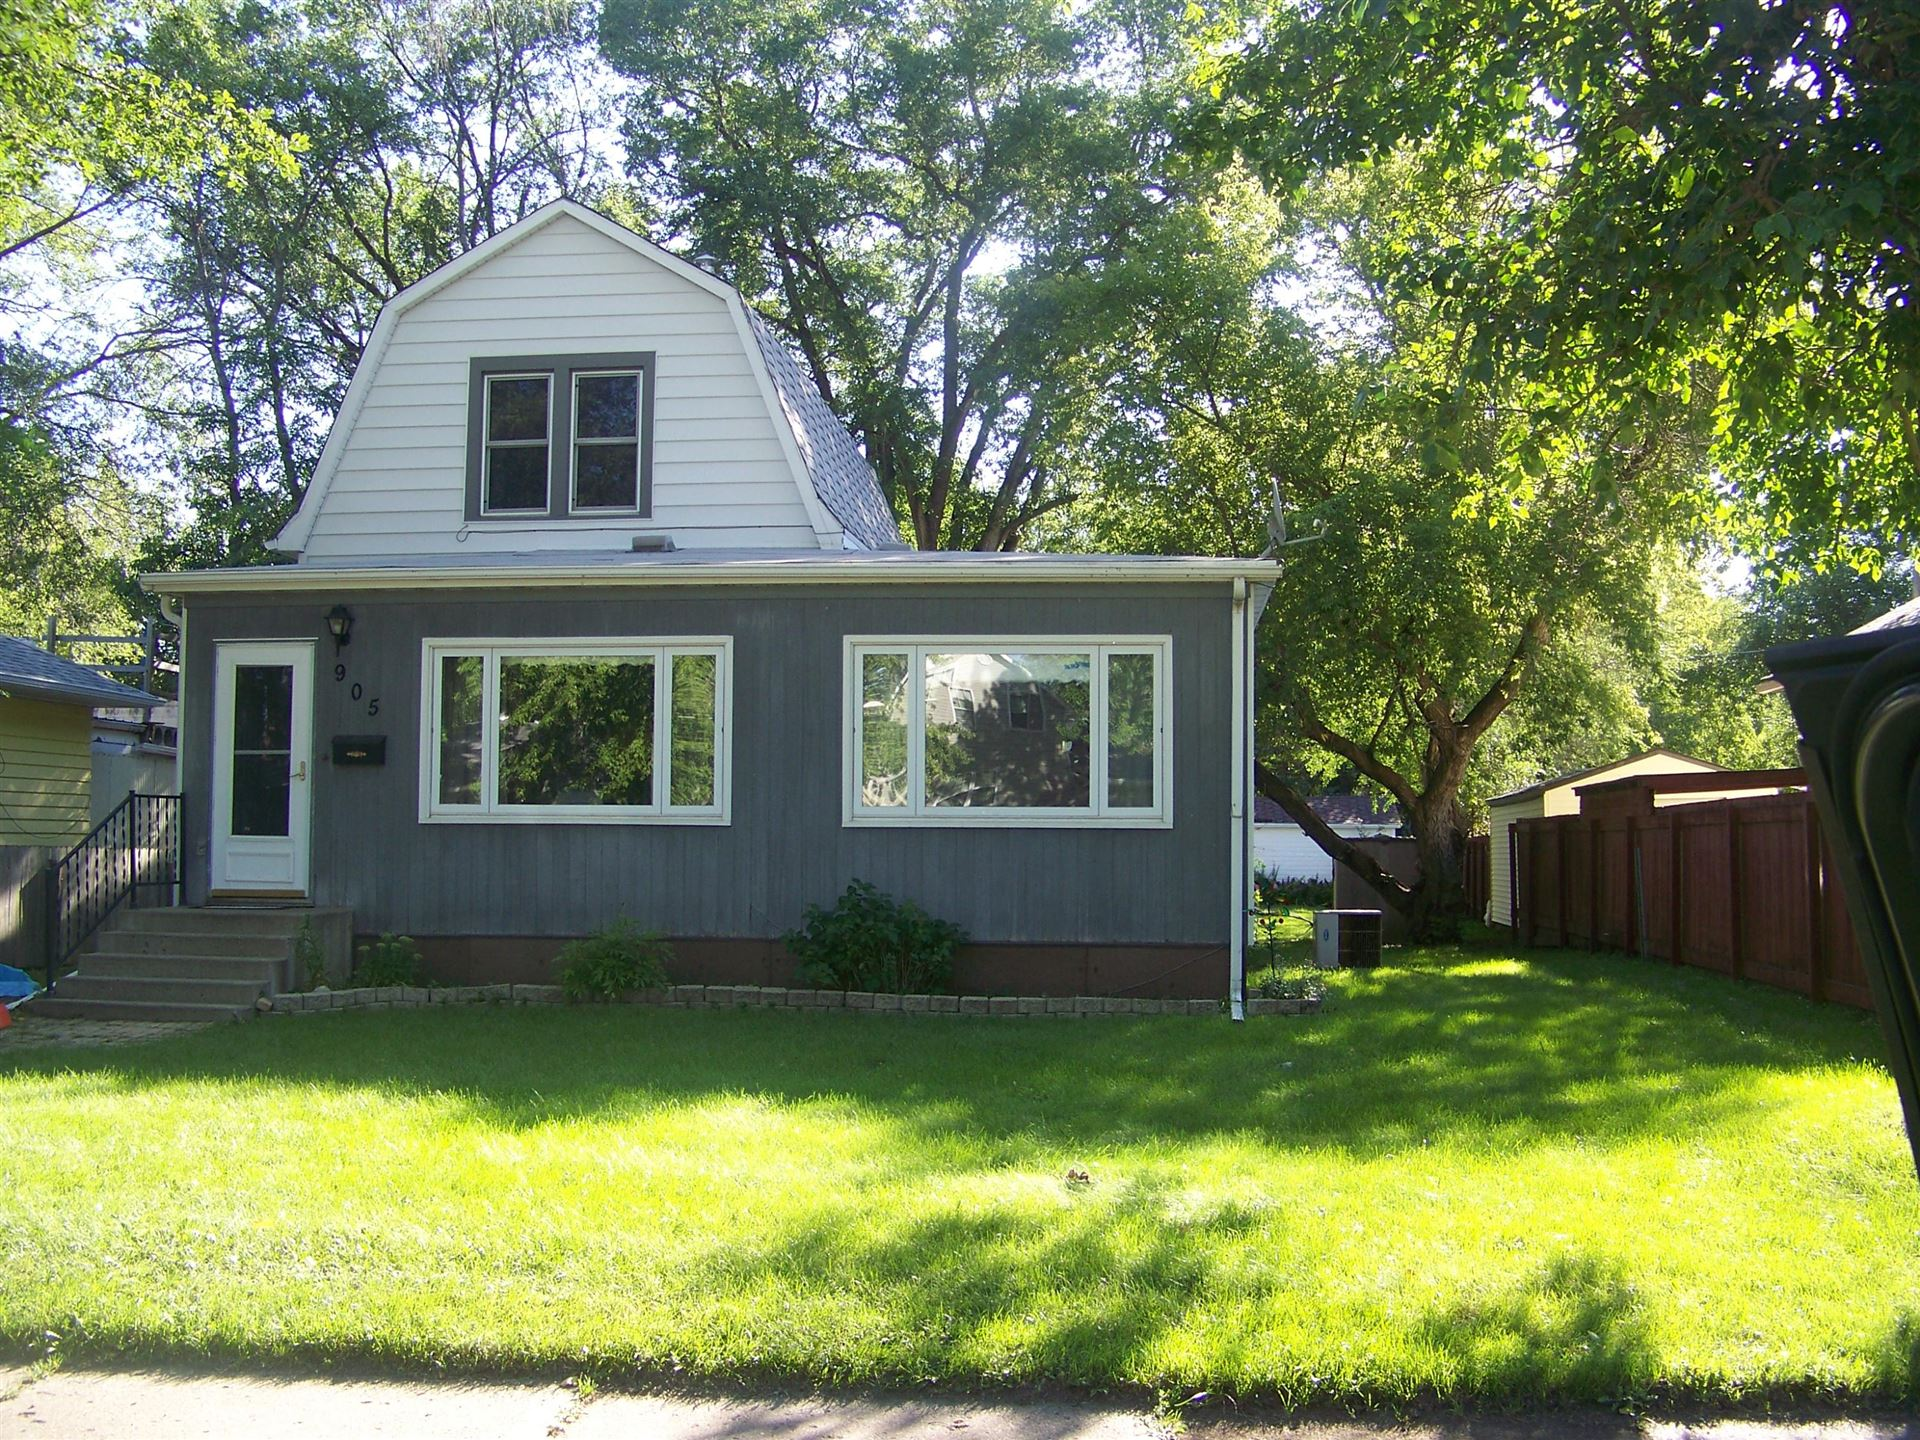 Photo for 905 9th Avenue SE, Jamestown, ND 58401 (MLS # 20-512)